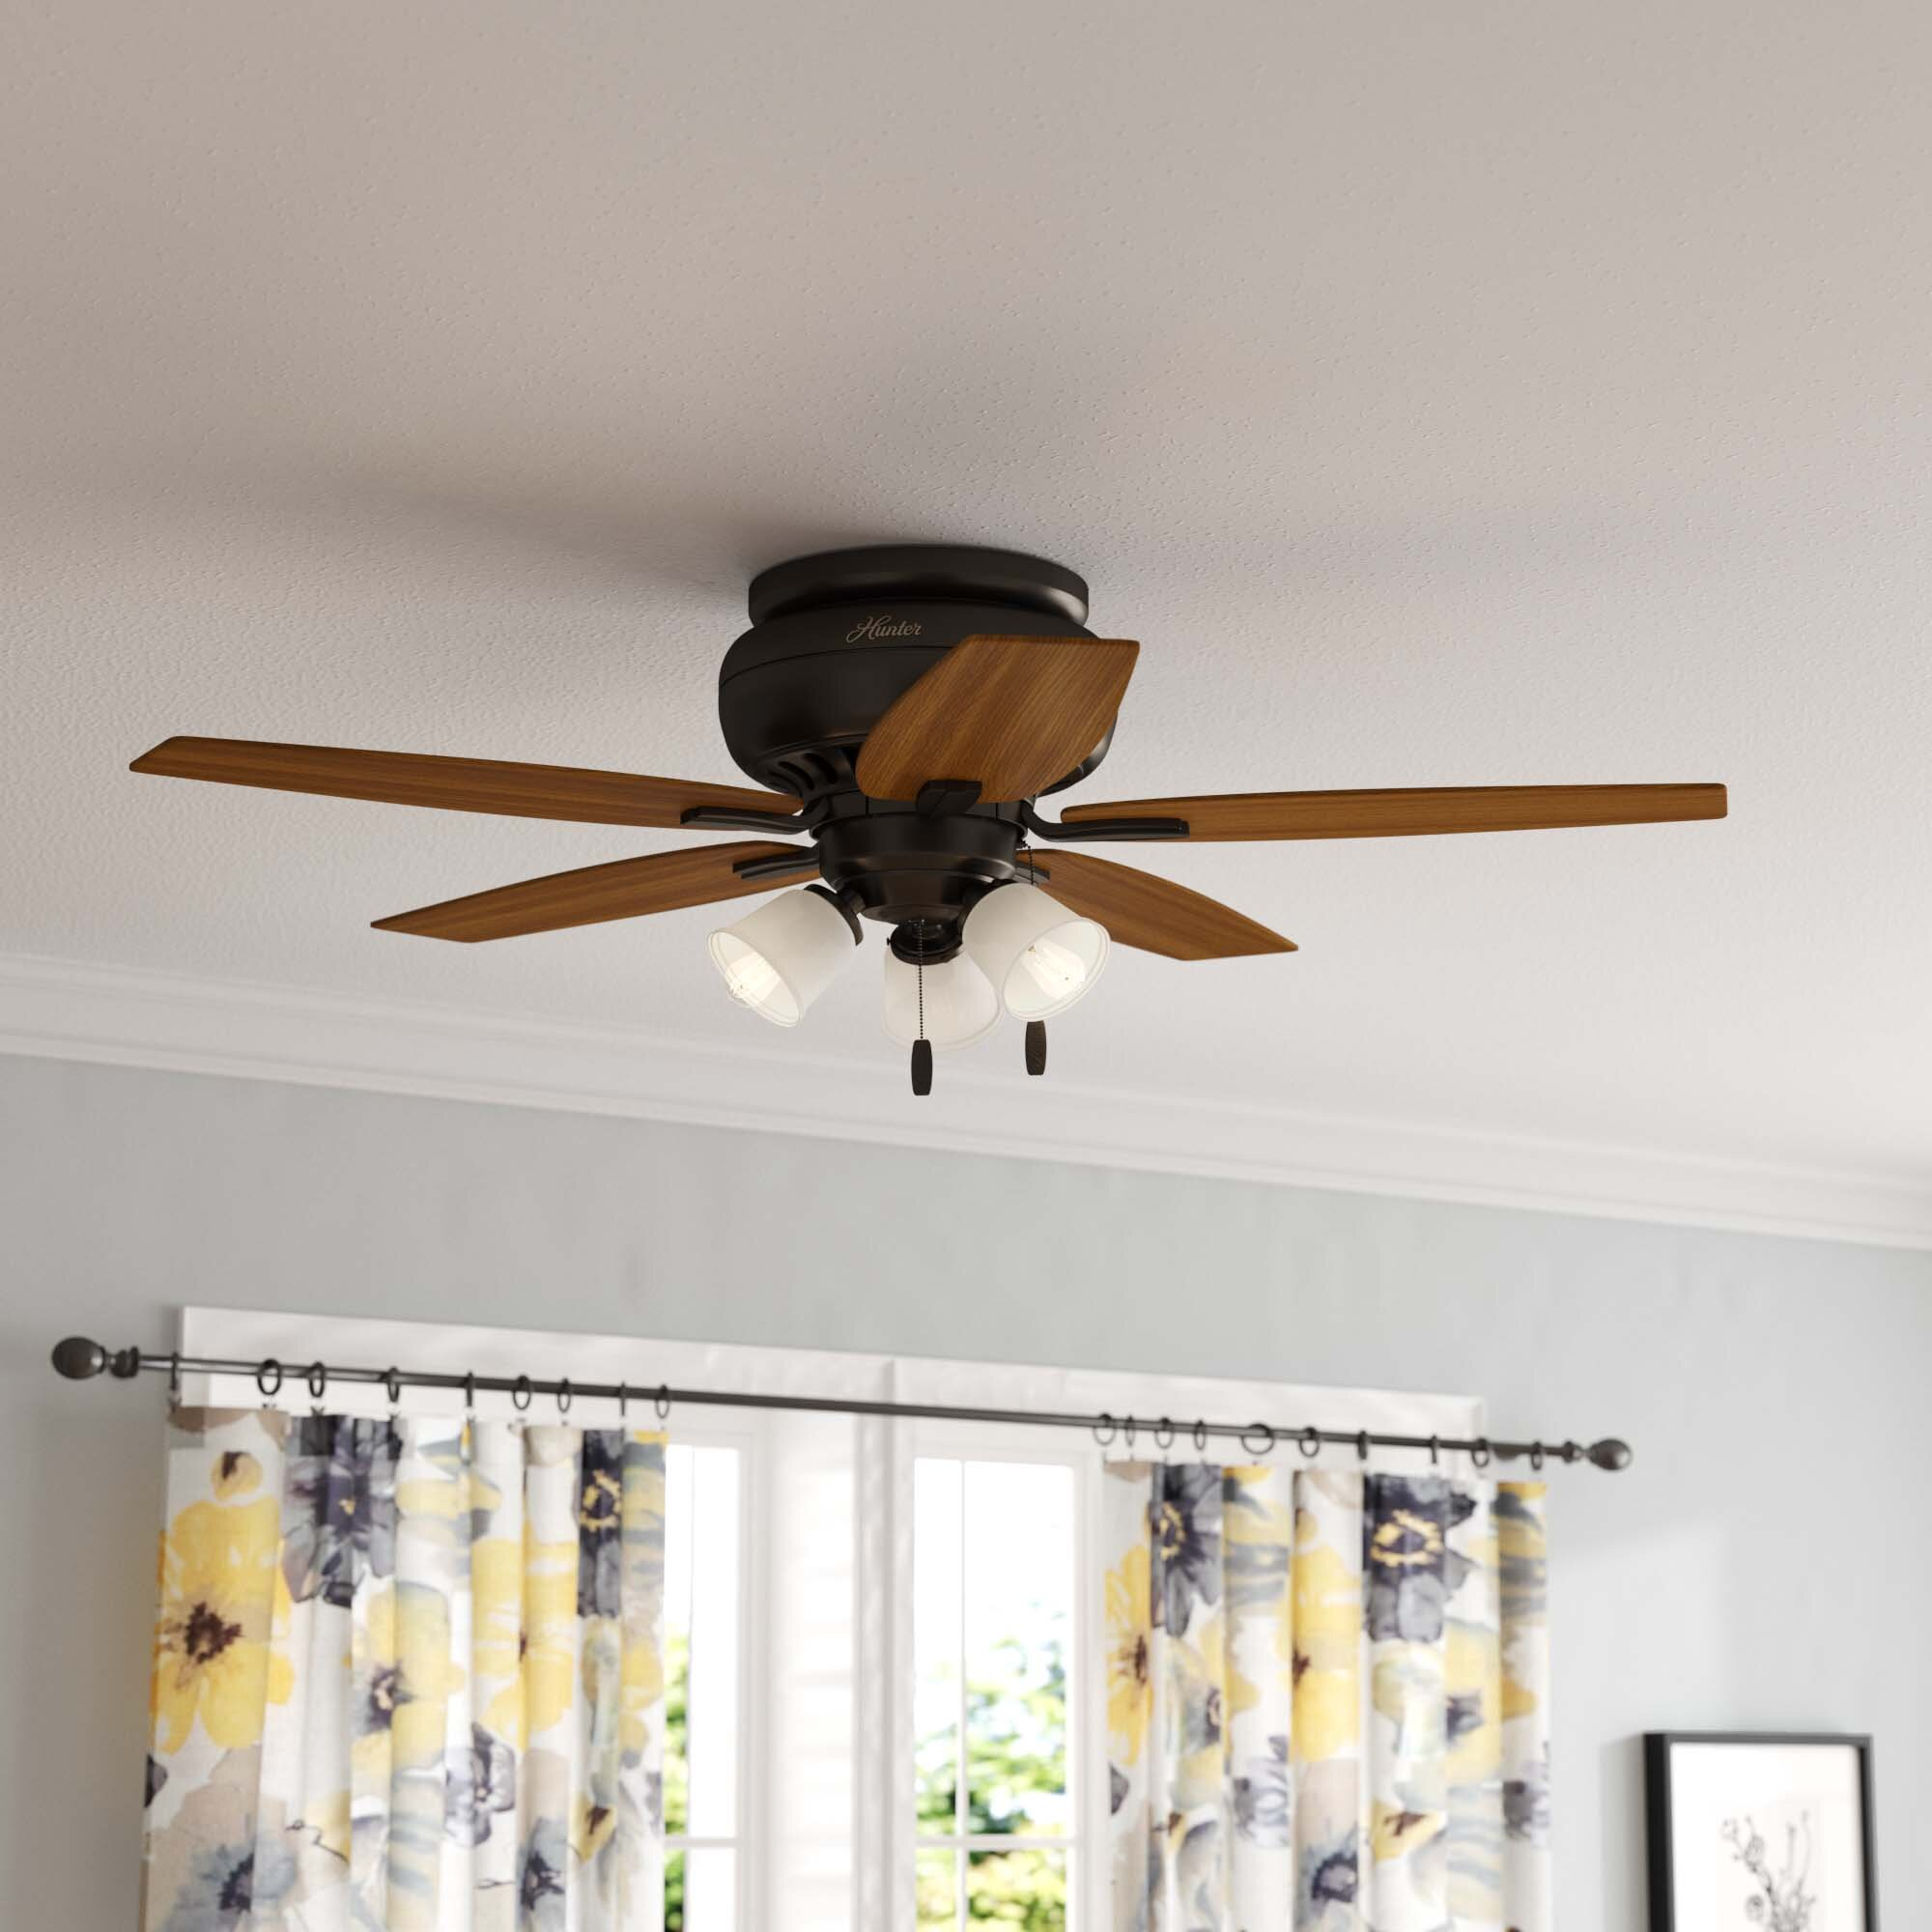 Hunter Fan 42 Newsome 5 Blade Flush Mount Ceiling Fan With Pull Chain And Light Kit Included Reviews Wayfair